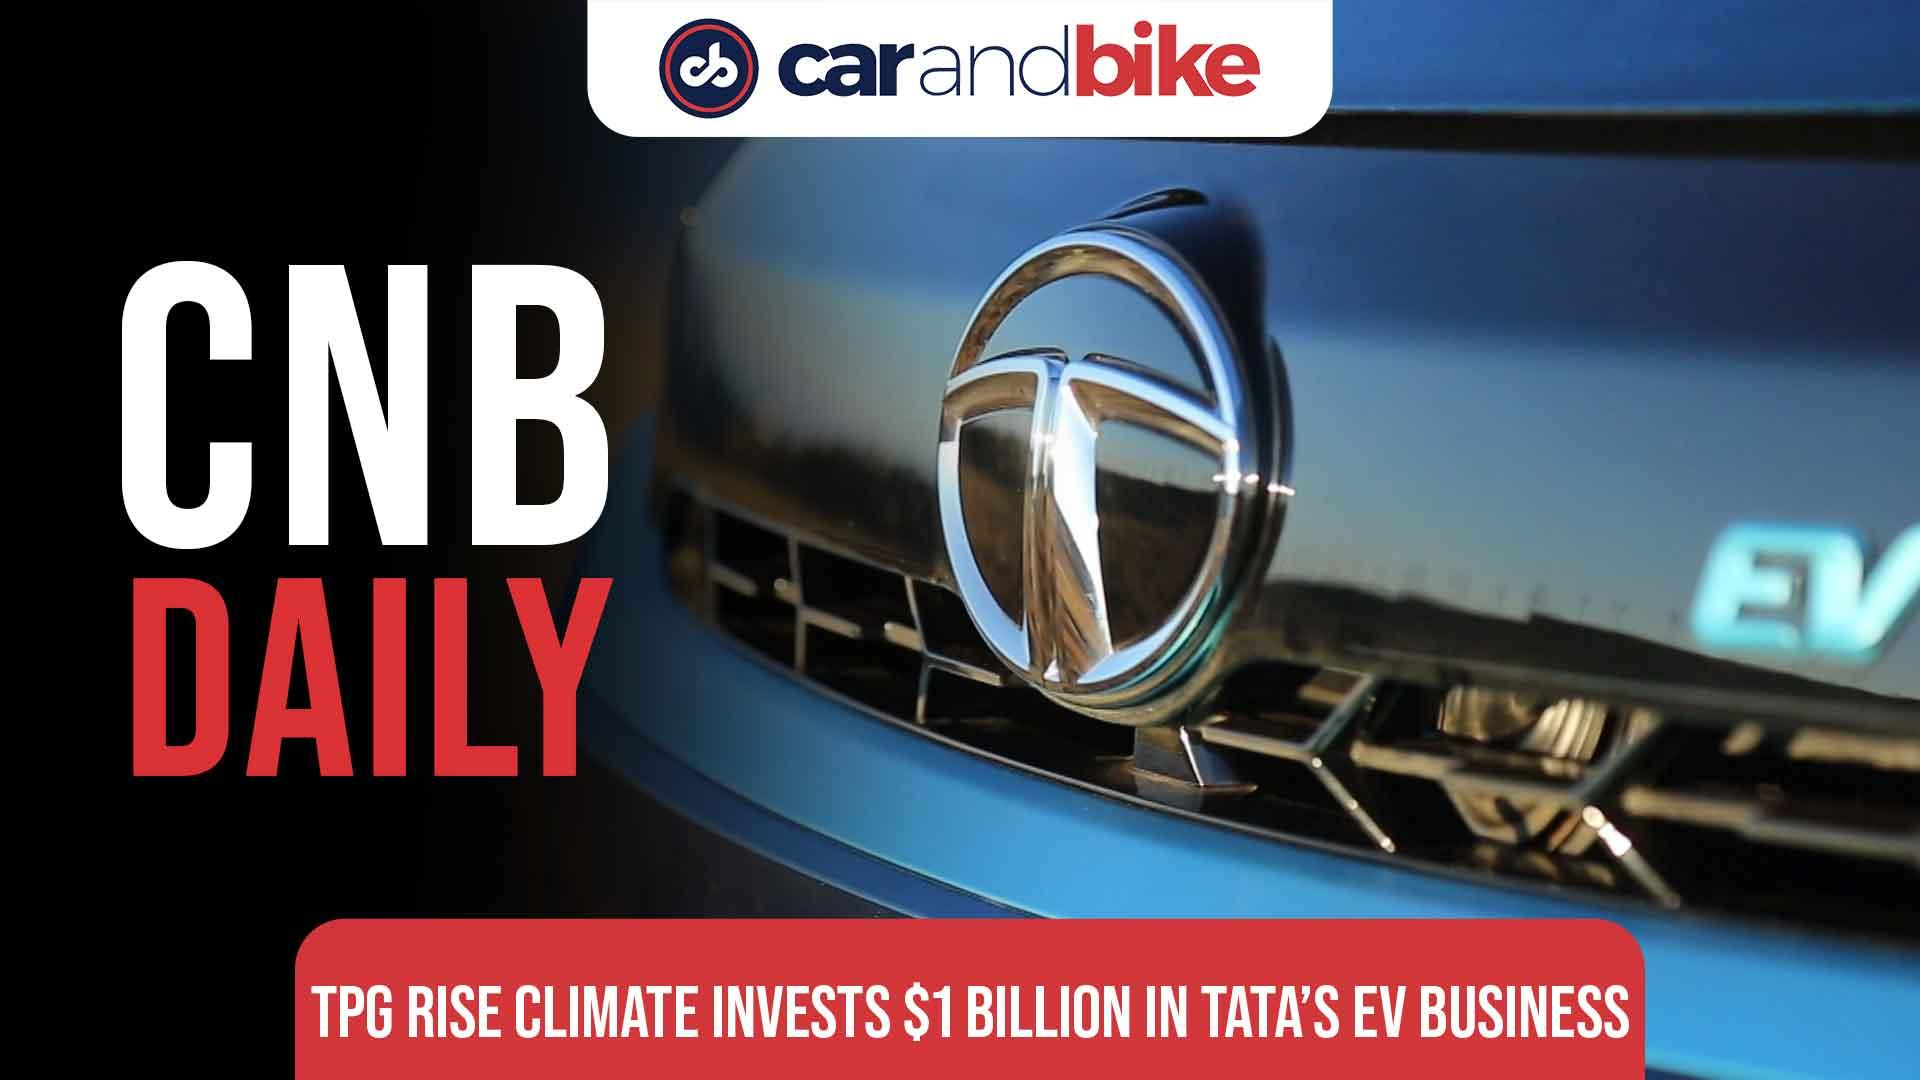 TPG Rise Climate Invests $1 Billion In Tata's EV Business